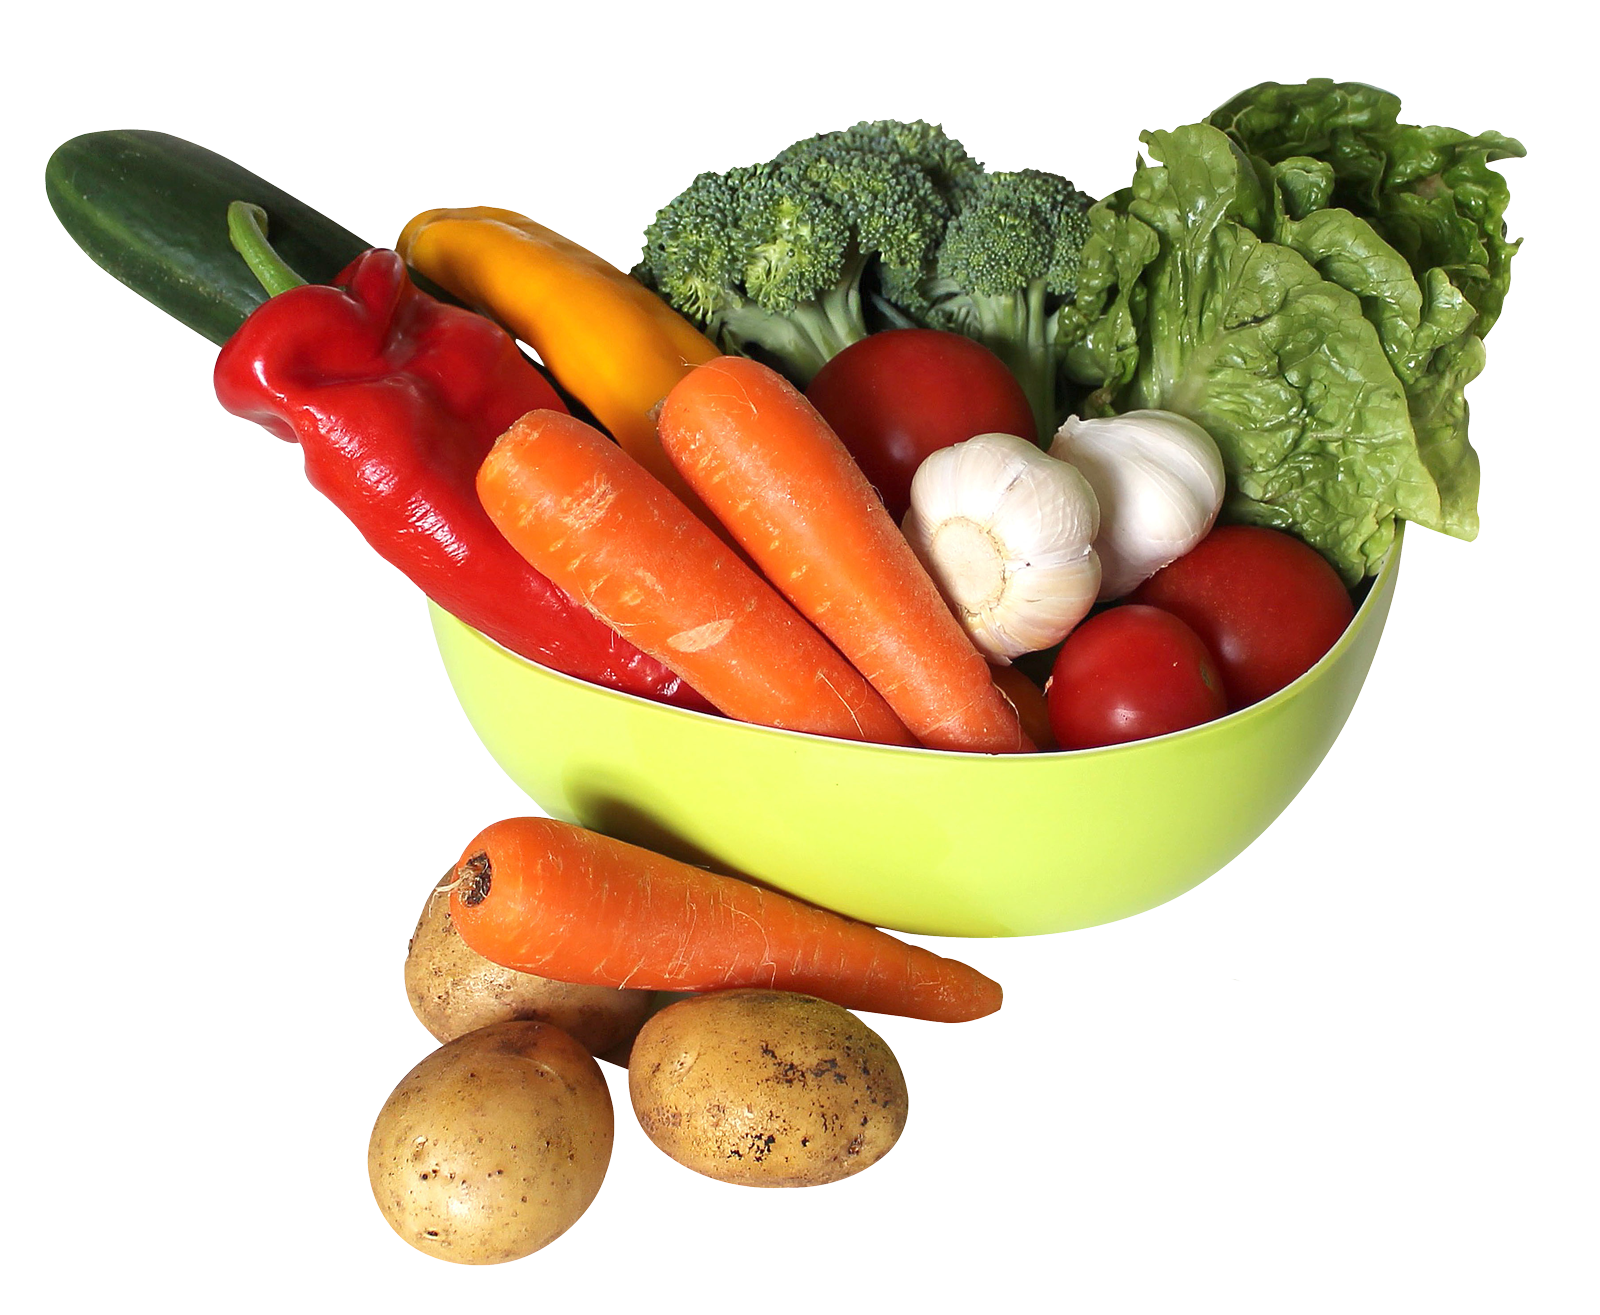 Vegetable PNG - 20357